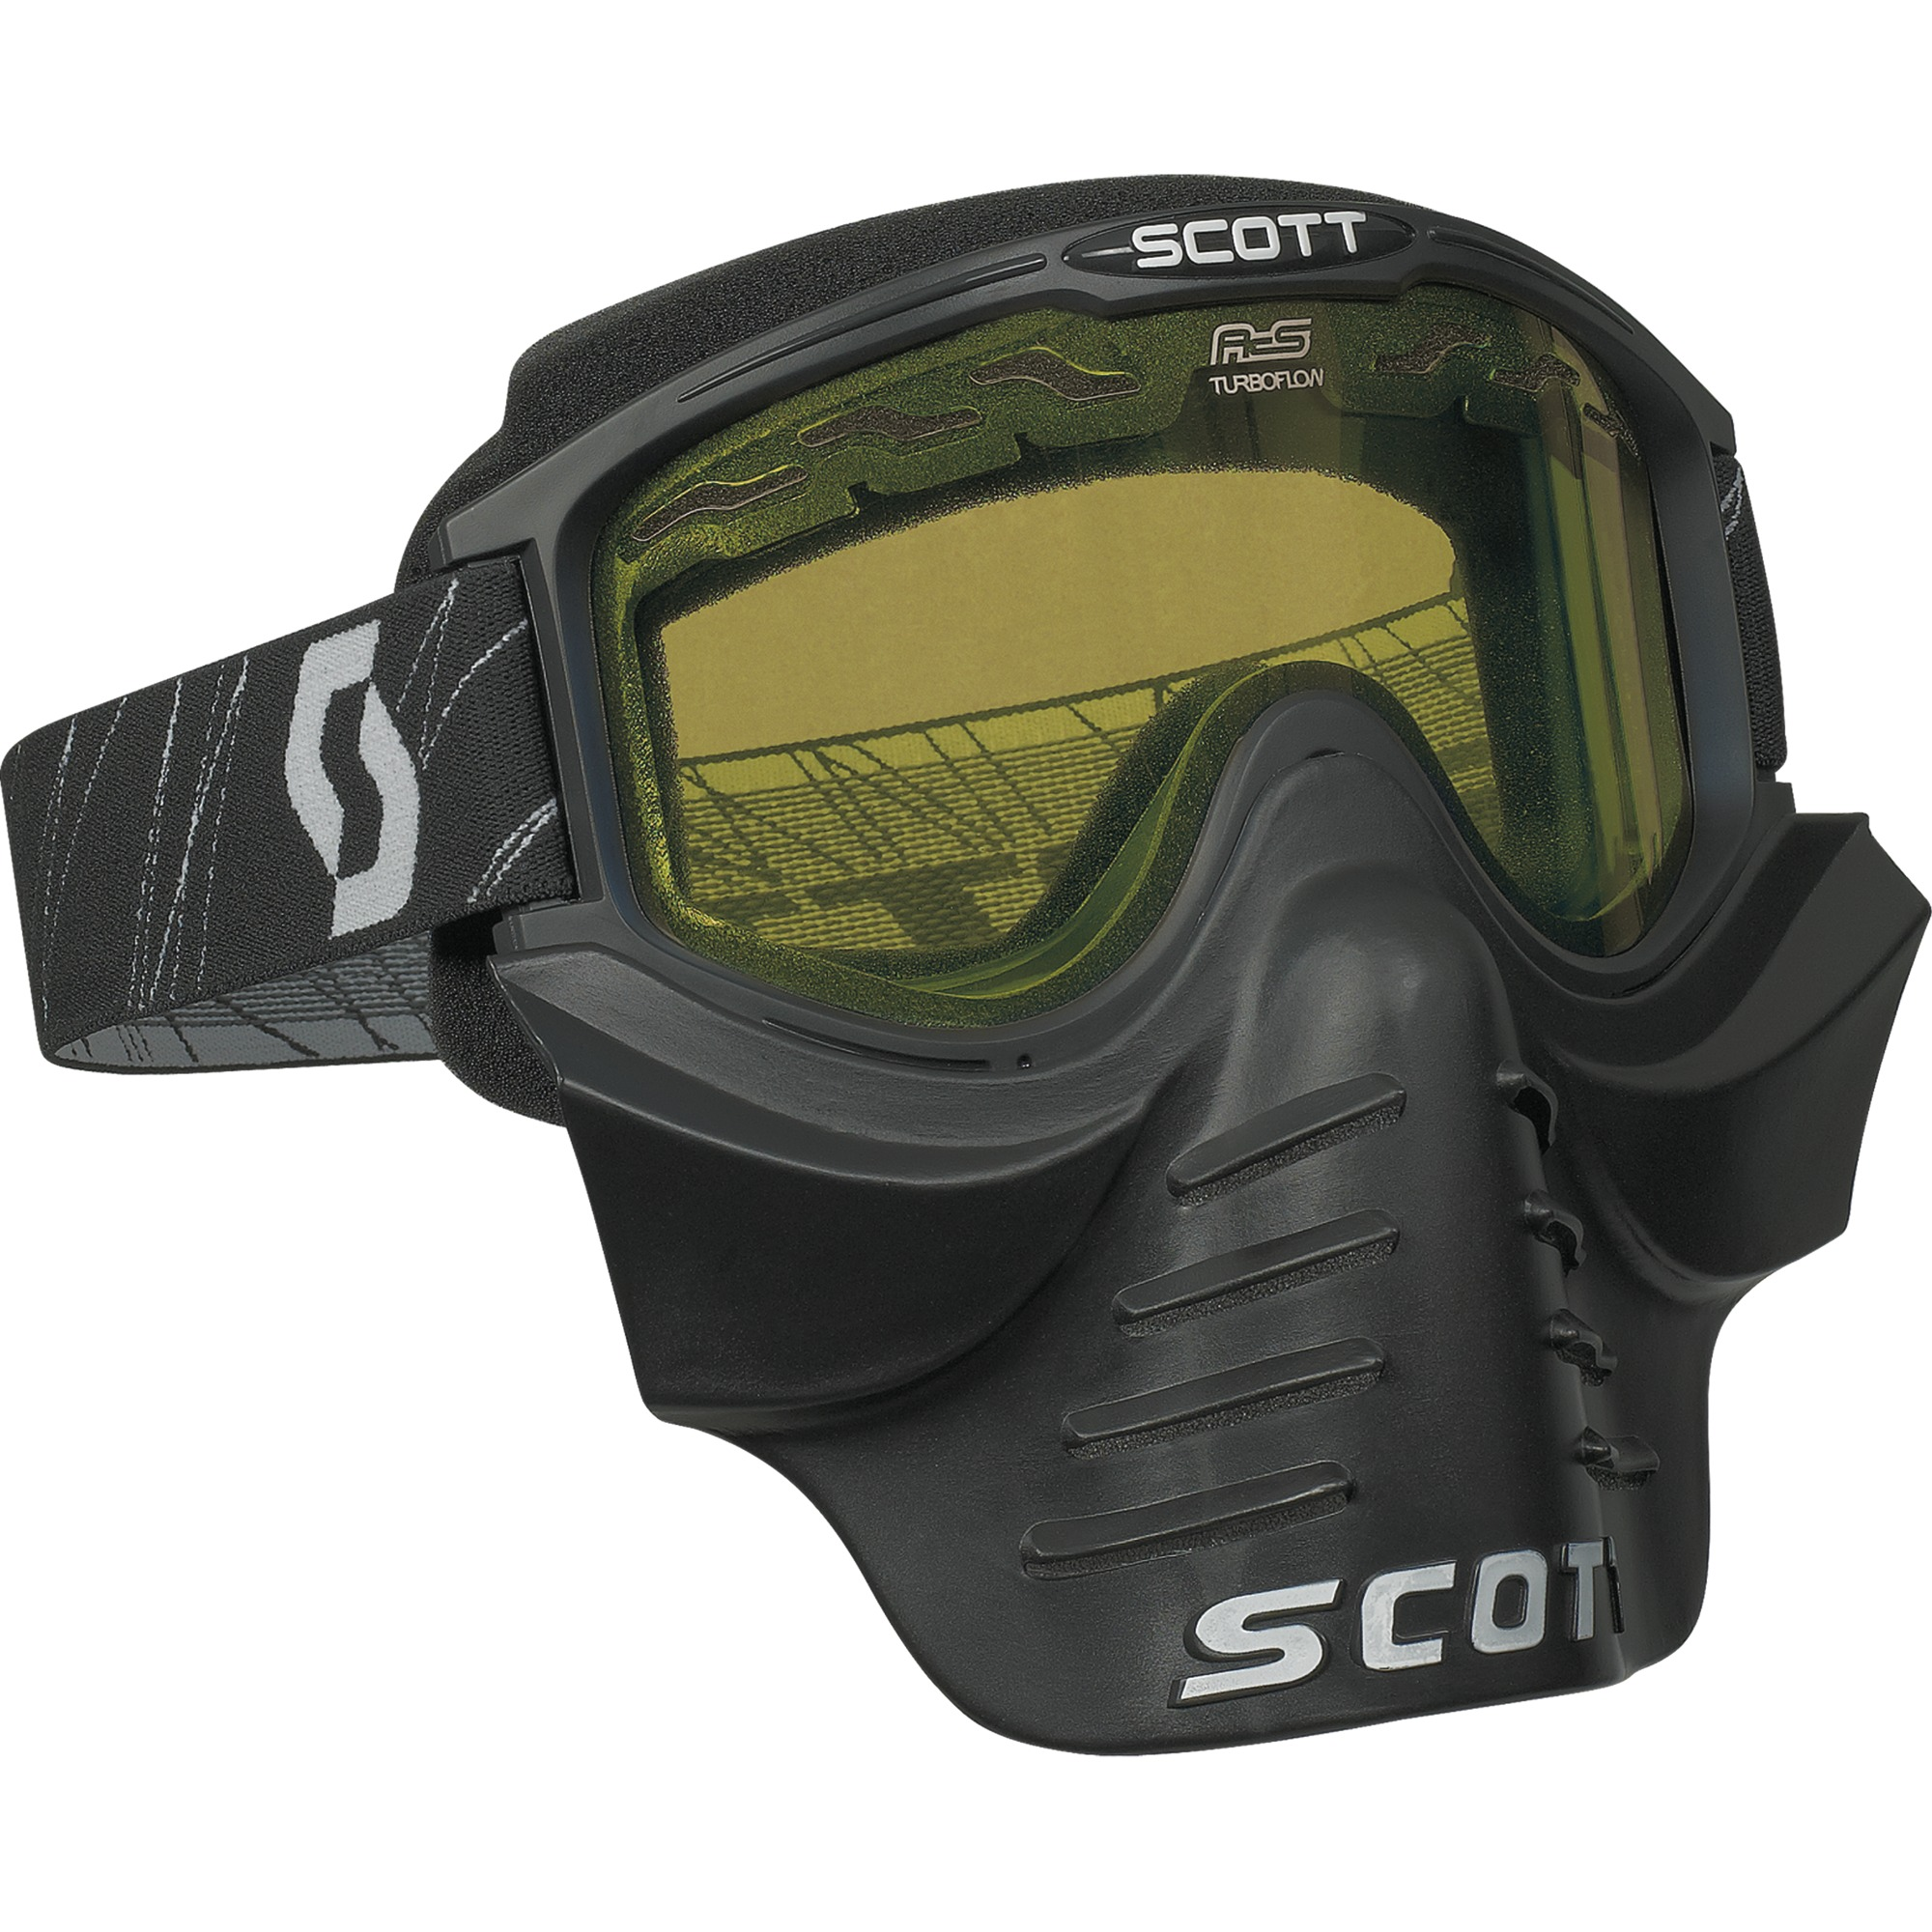 SCOTT 83X Safari Facemask Goggle